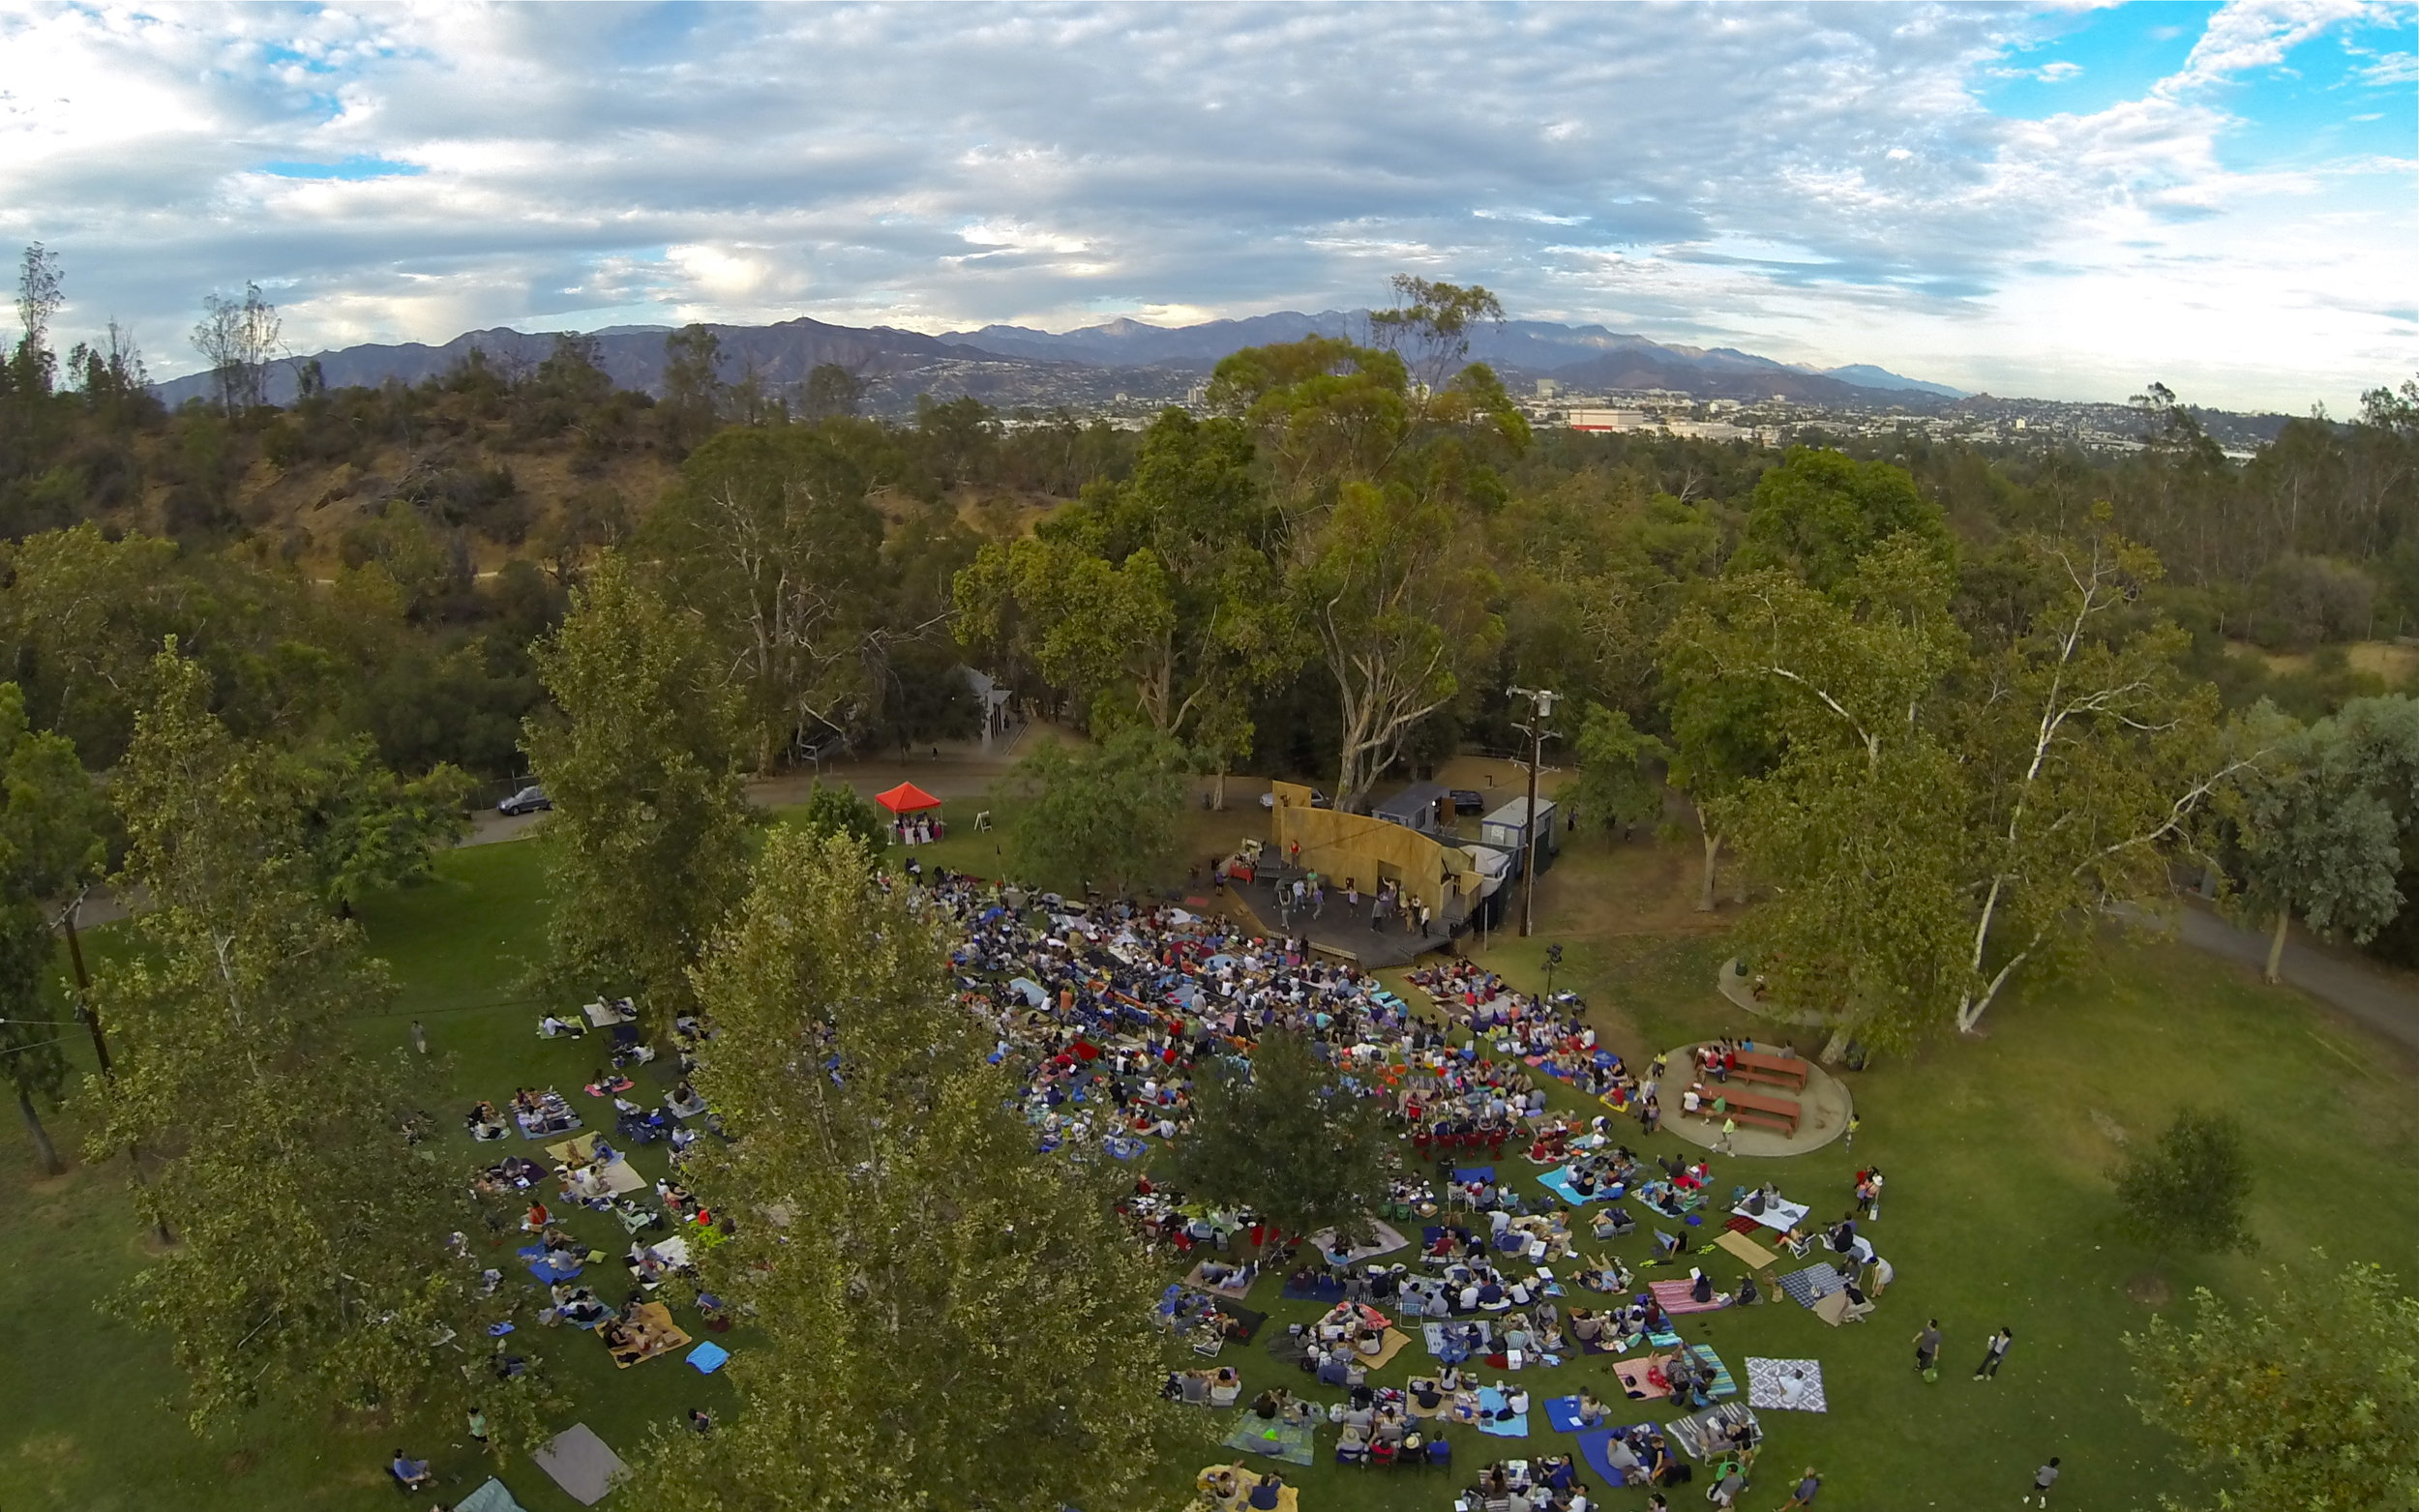 Aerial shot by Colin Burgess. 2013 Griffith Park Free Shakespeare Festival.